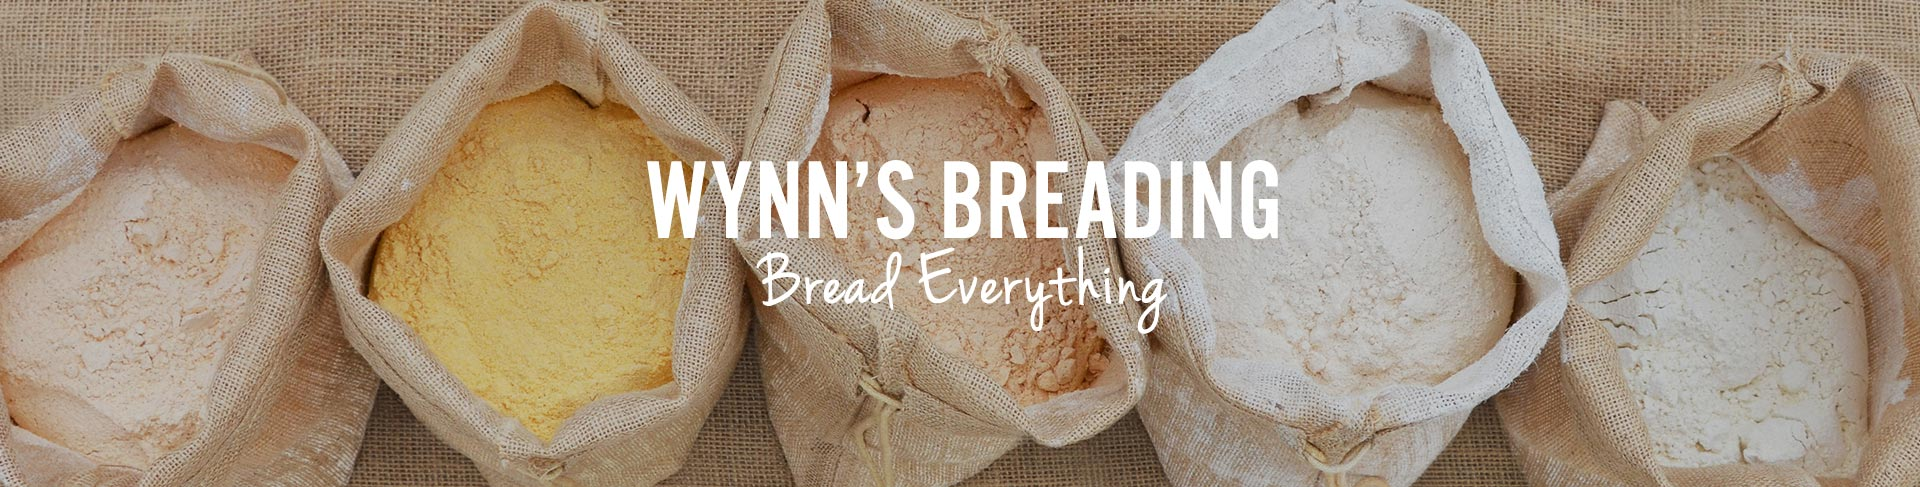 Wynn's Grain and Spice